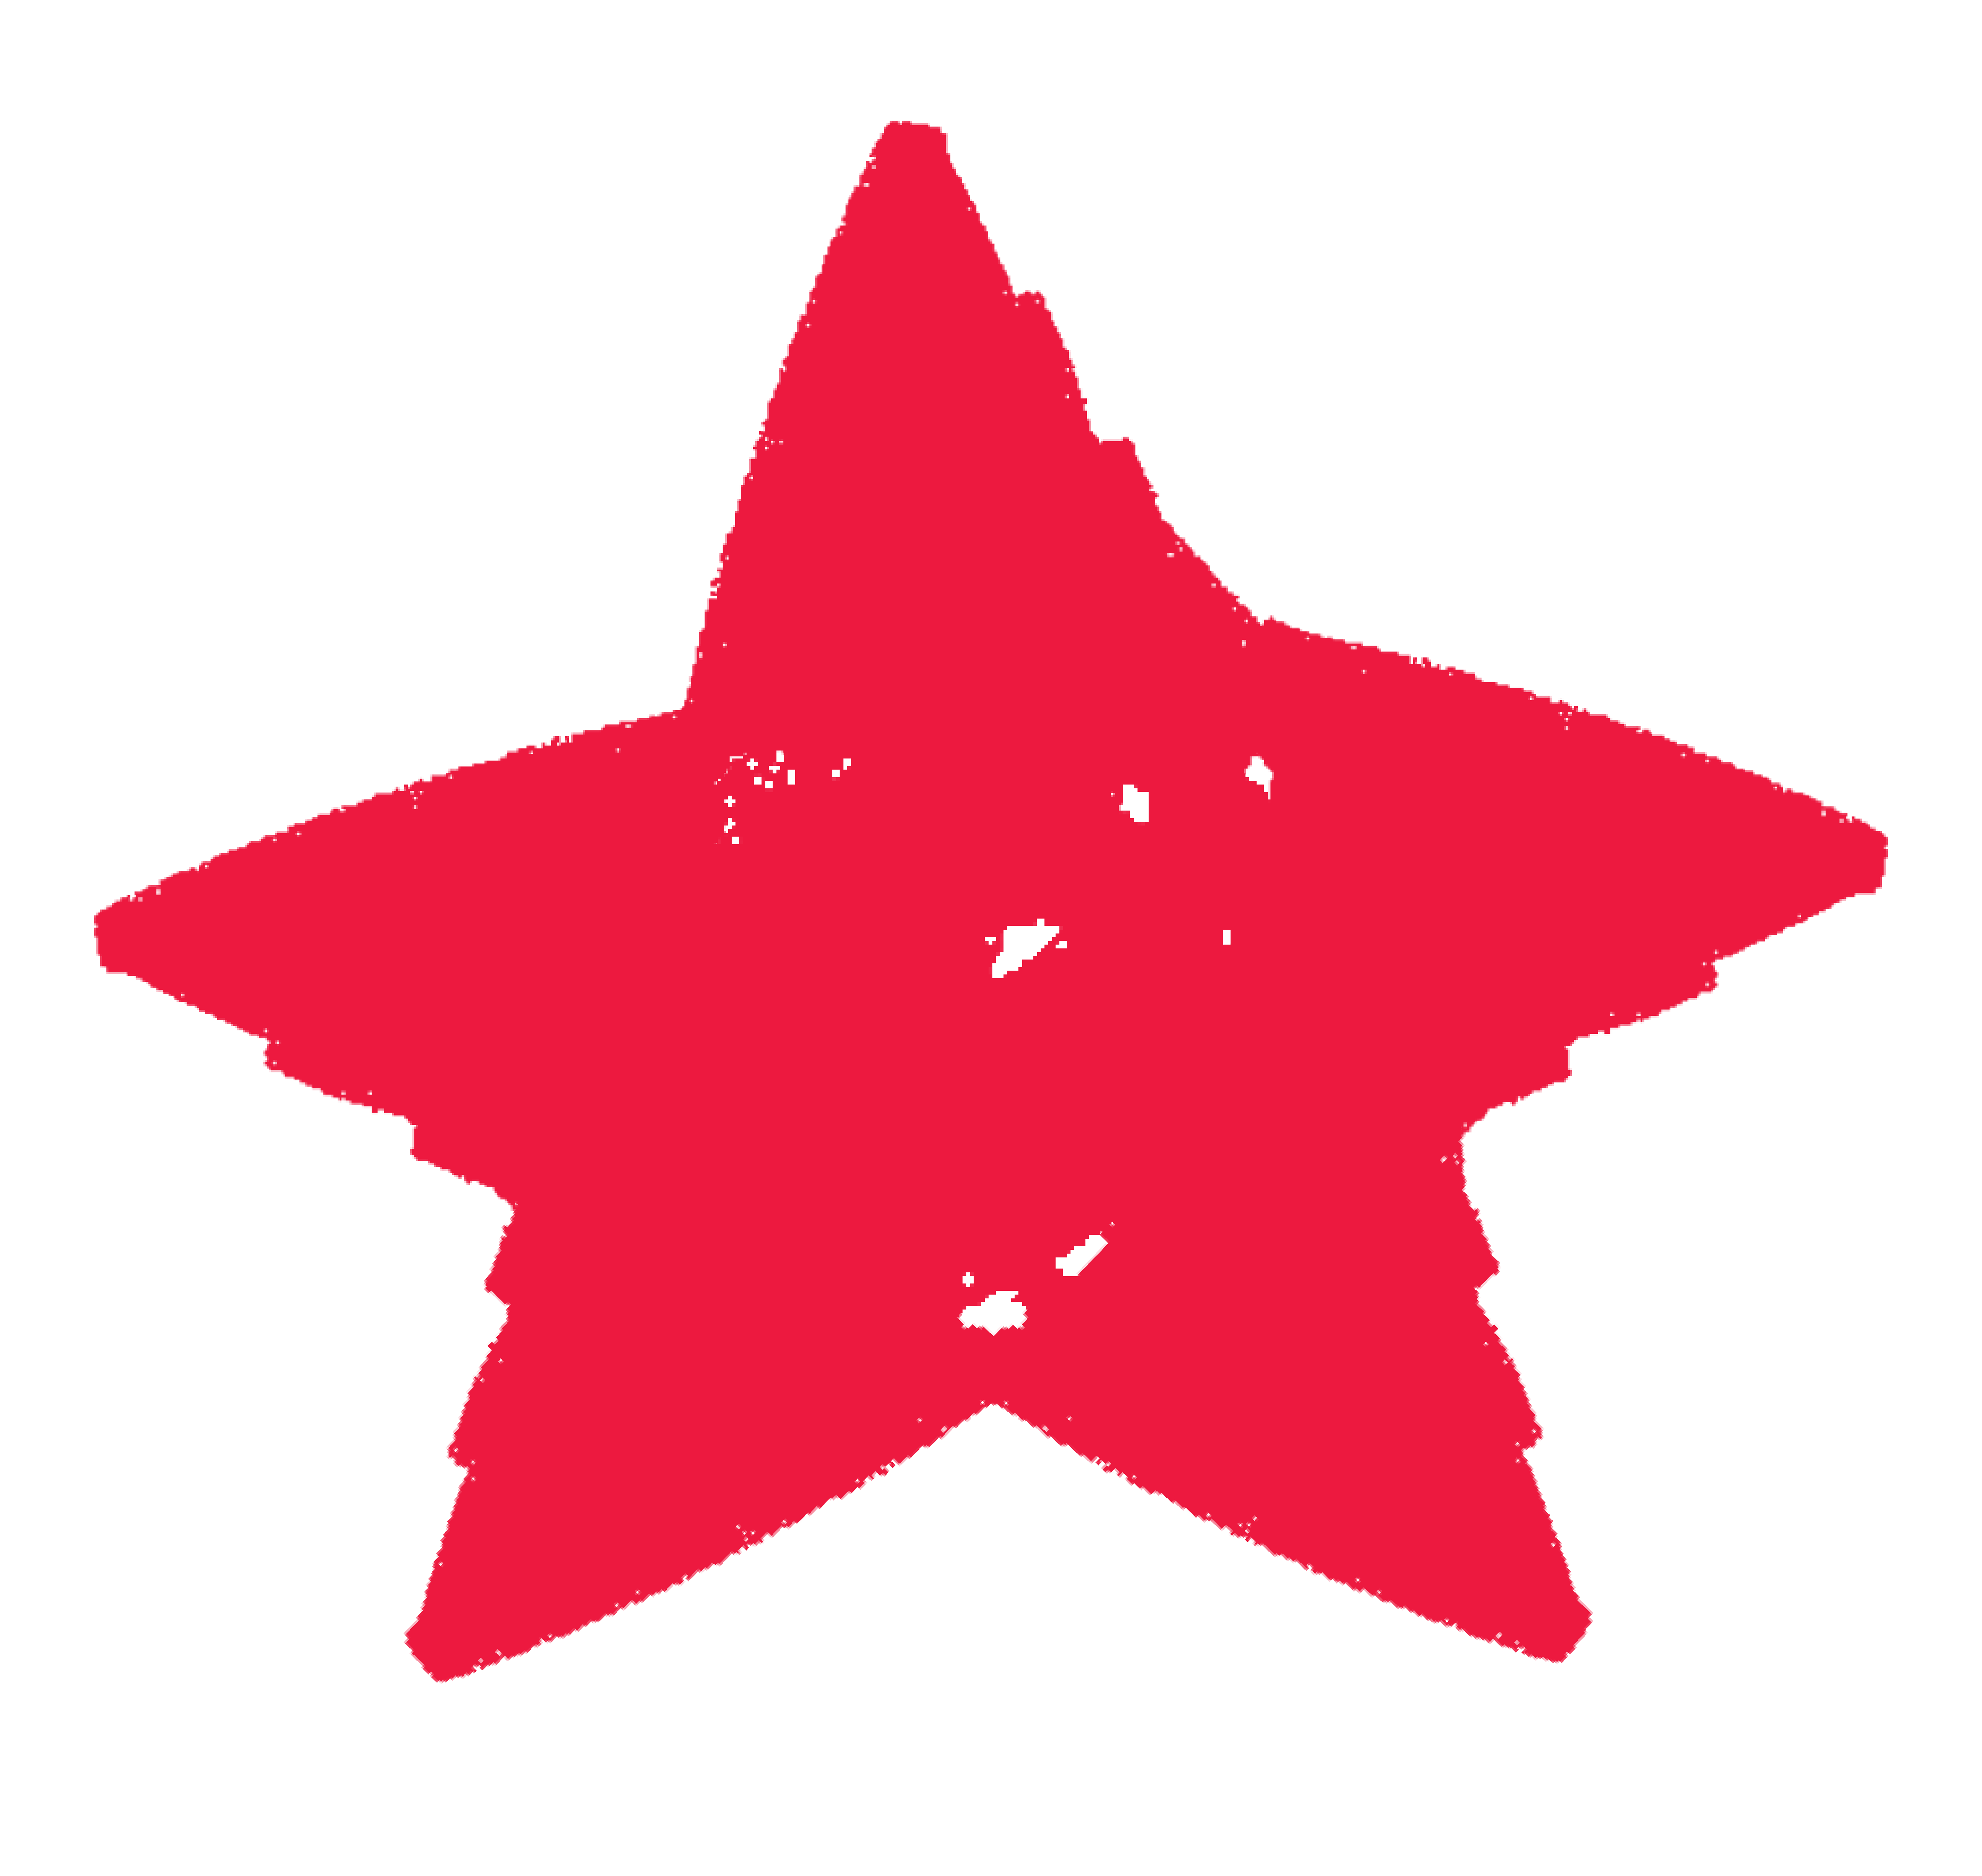 red star scribble